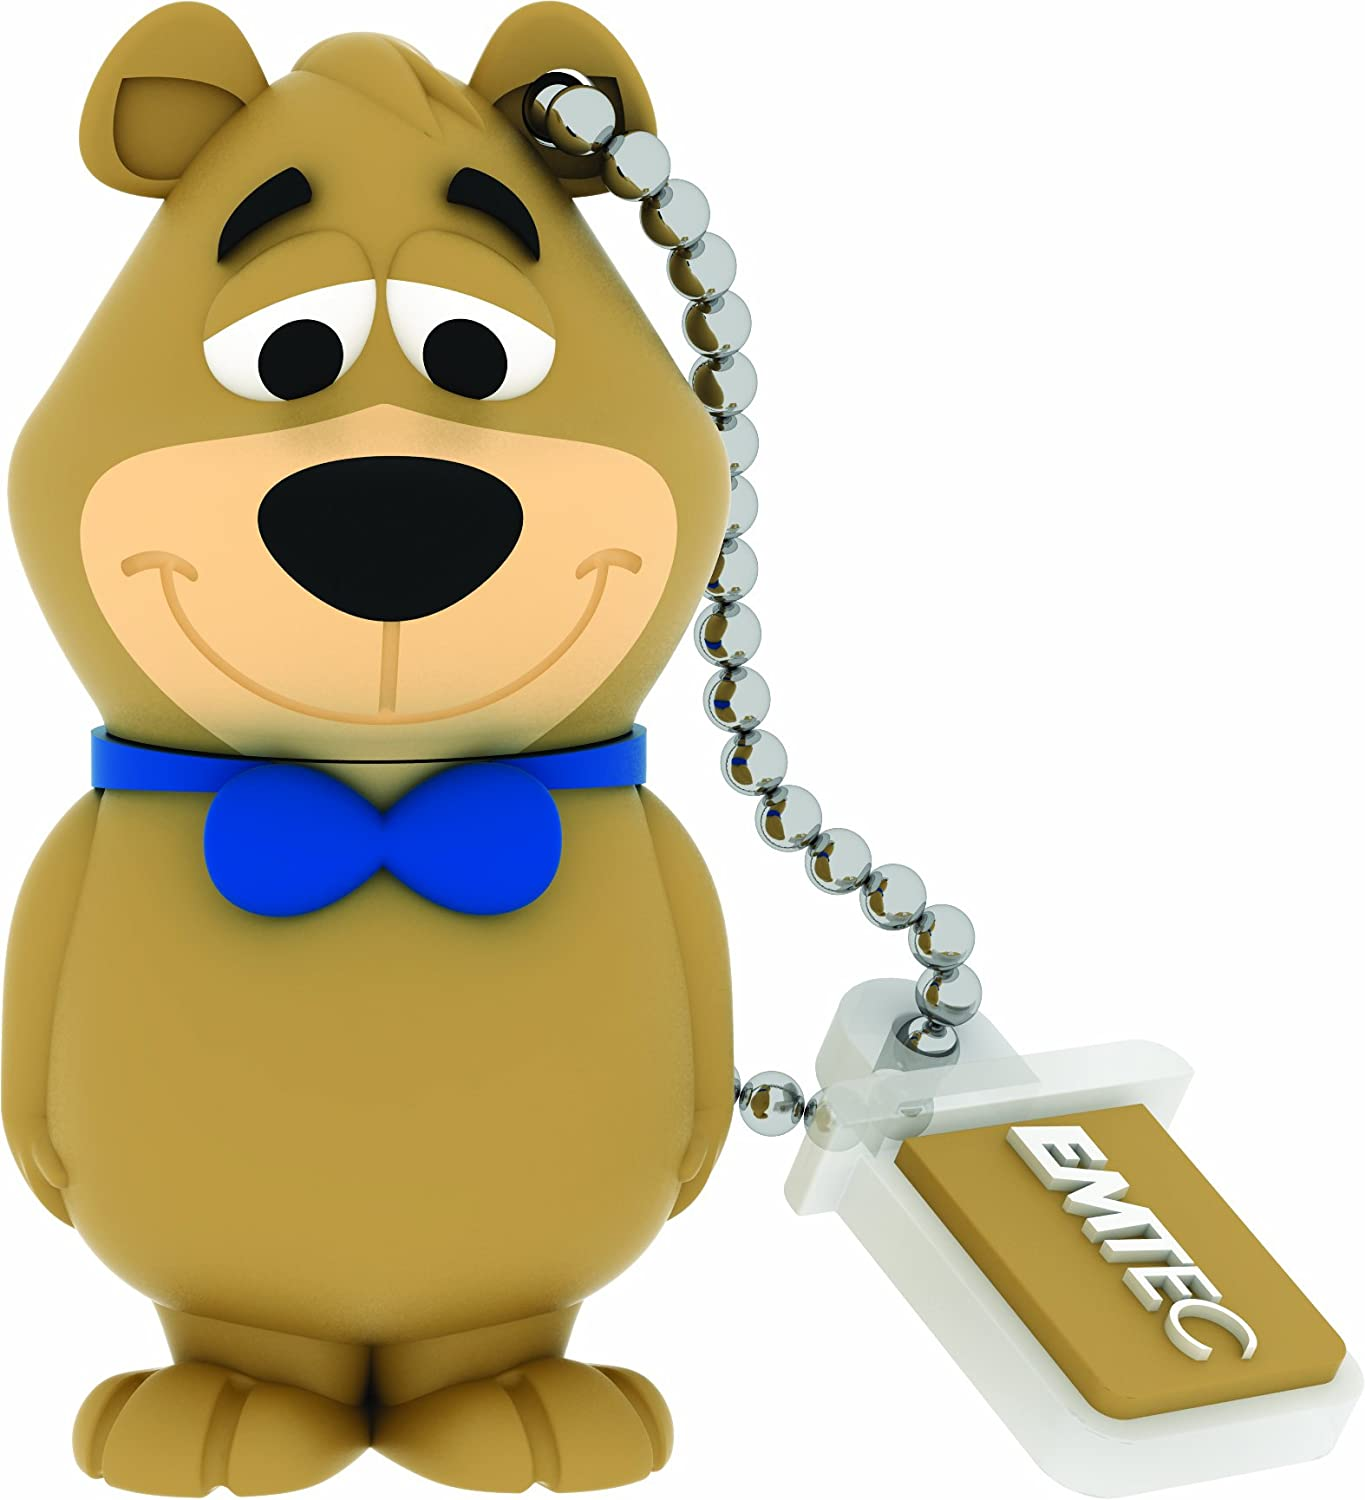 Emtec Yogi Bear and Boo Boo USB 2.0 (8GB) Flash Drive (Boo Boo)